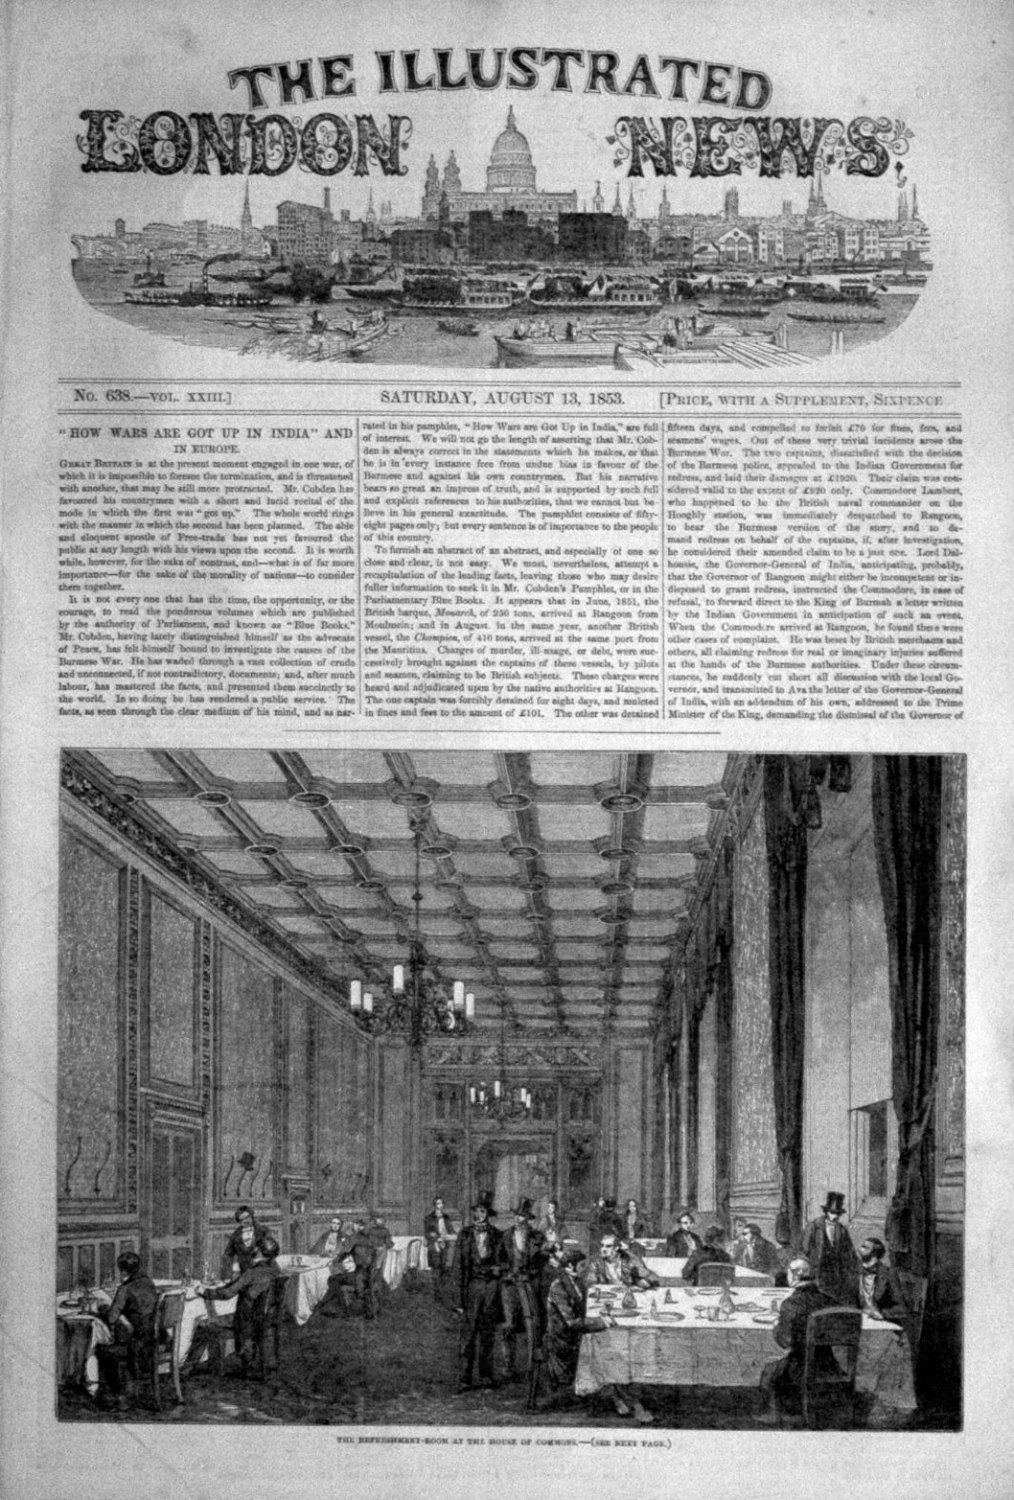 Illustrated London News Aug 13th 1853.